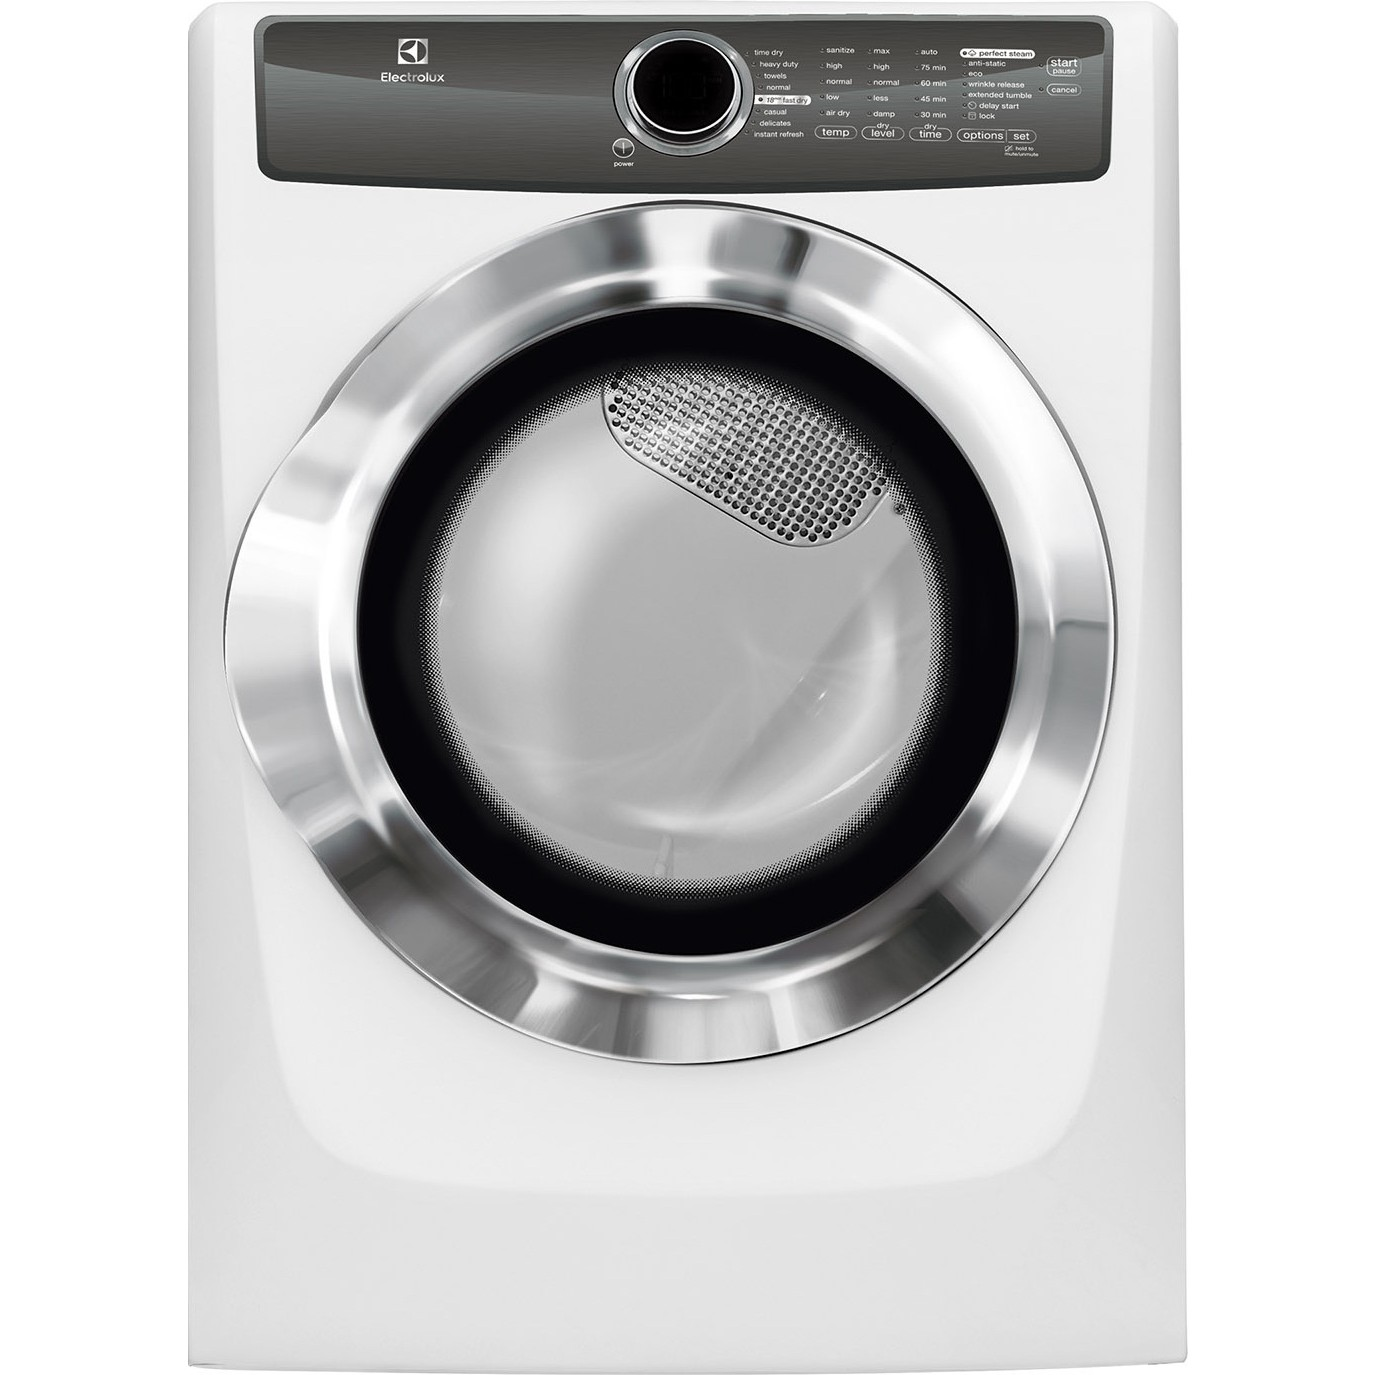 Electrolux efme517siw perfect steam electric dryer Electrolux washer and dryer